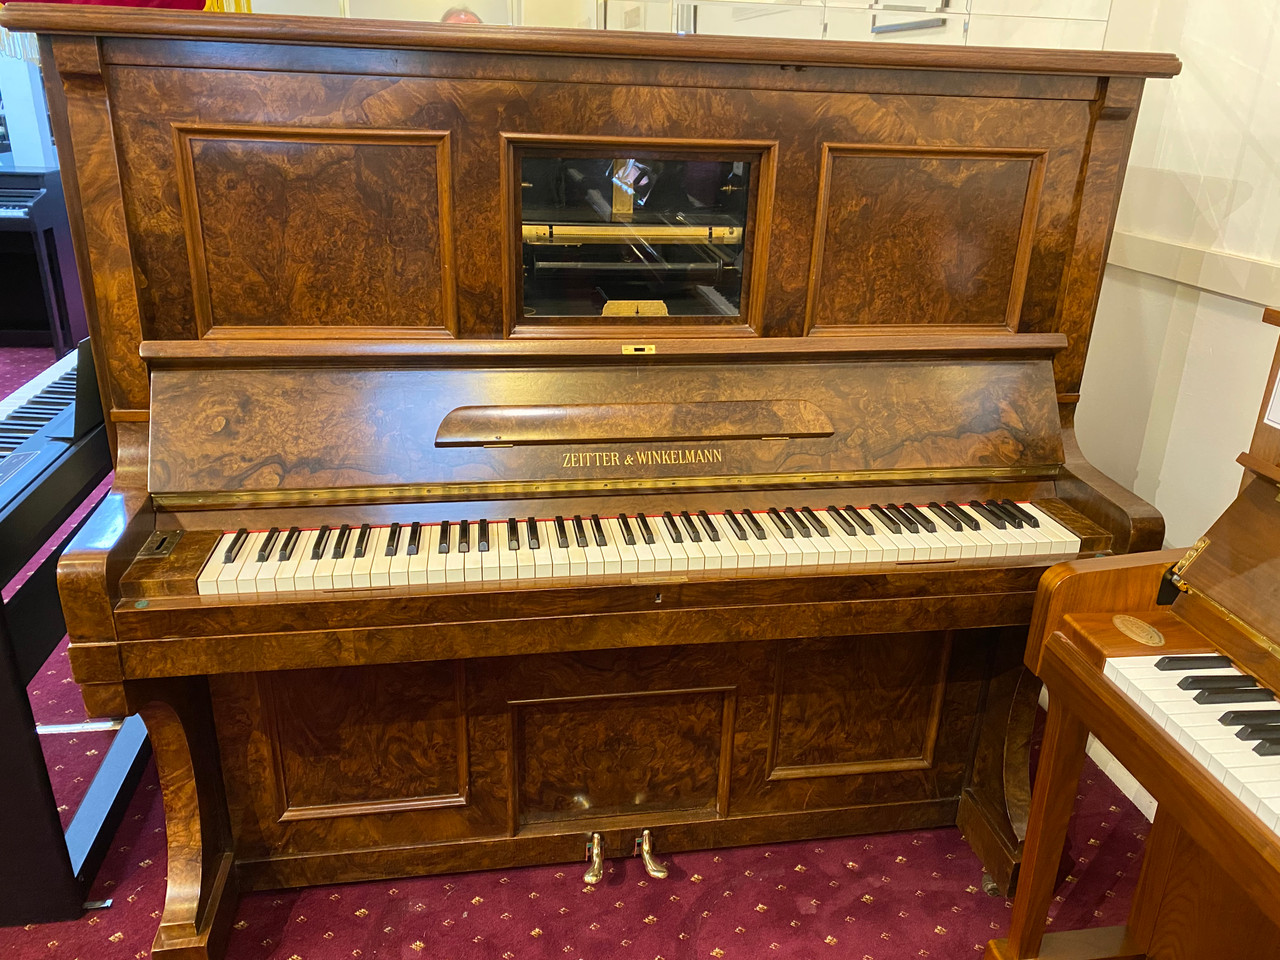 Zeiter & Winkelmann Player Piano